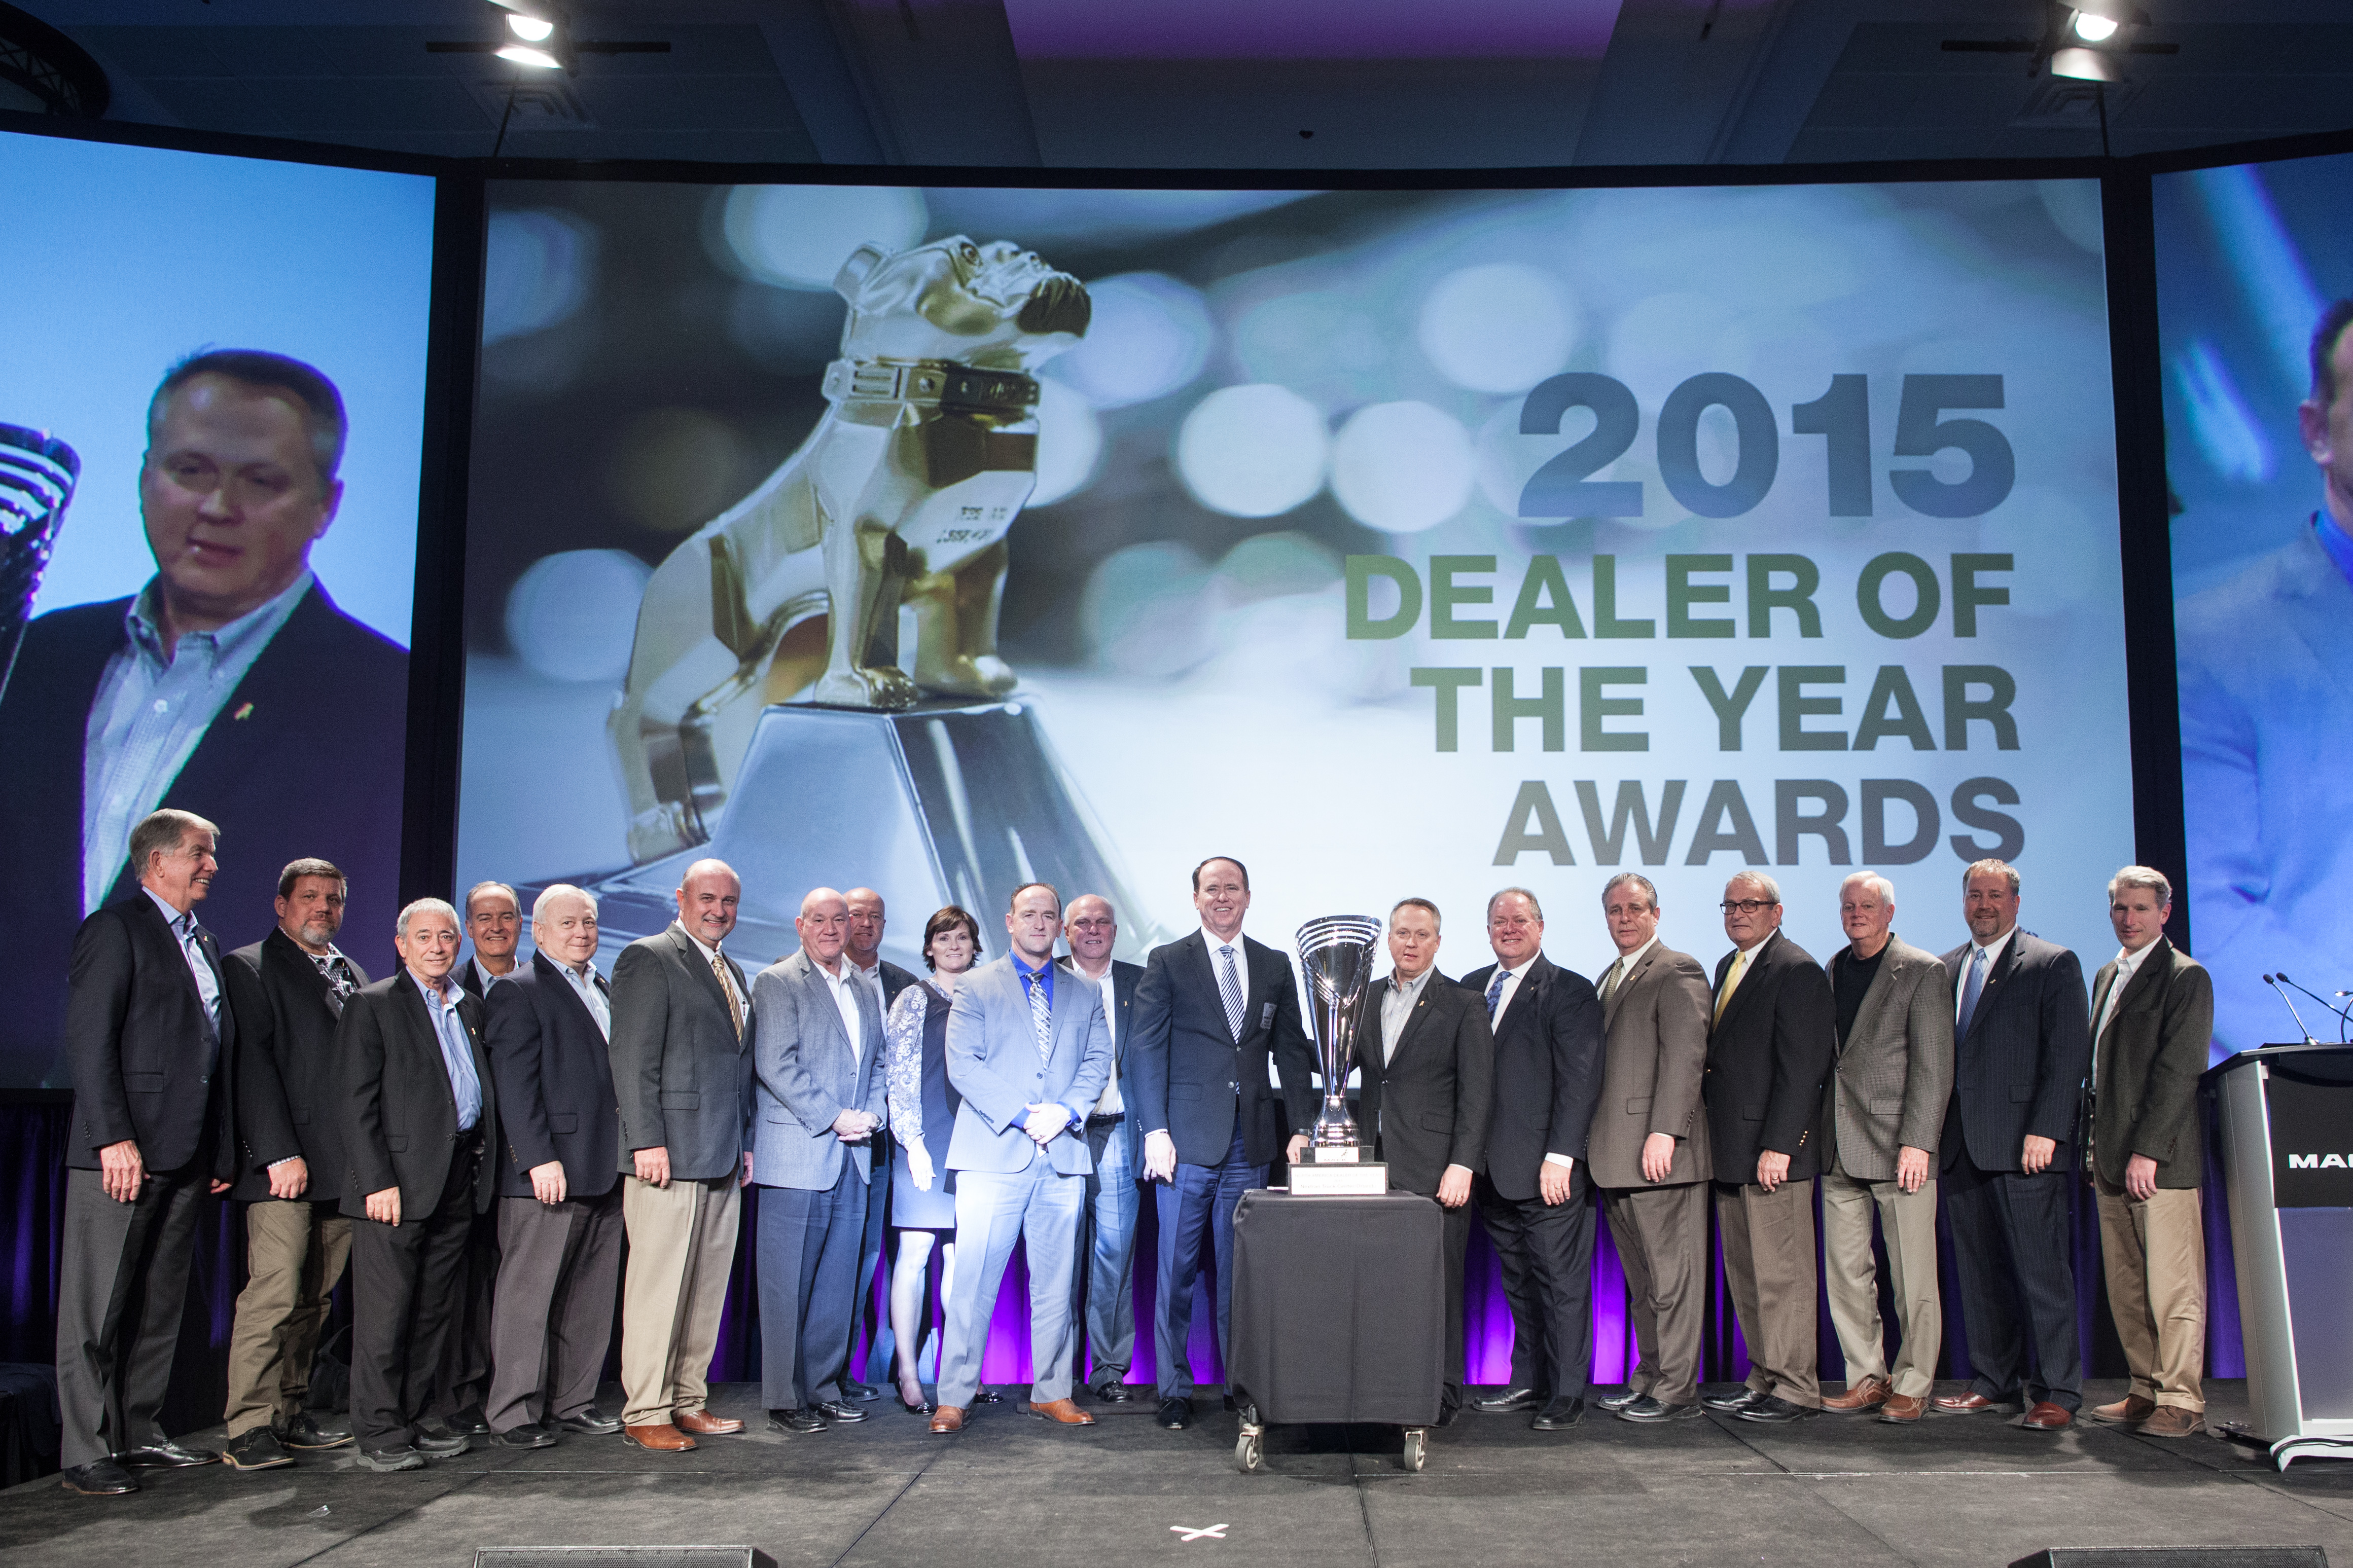 2015 Dealer of the Year Photo